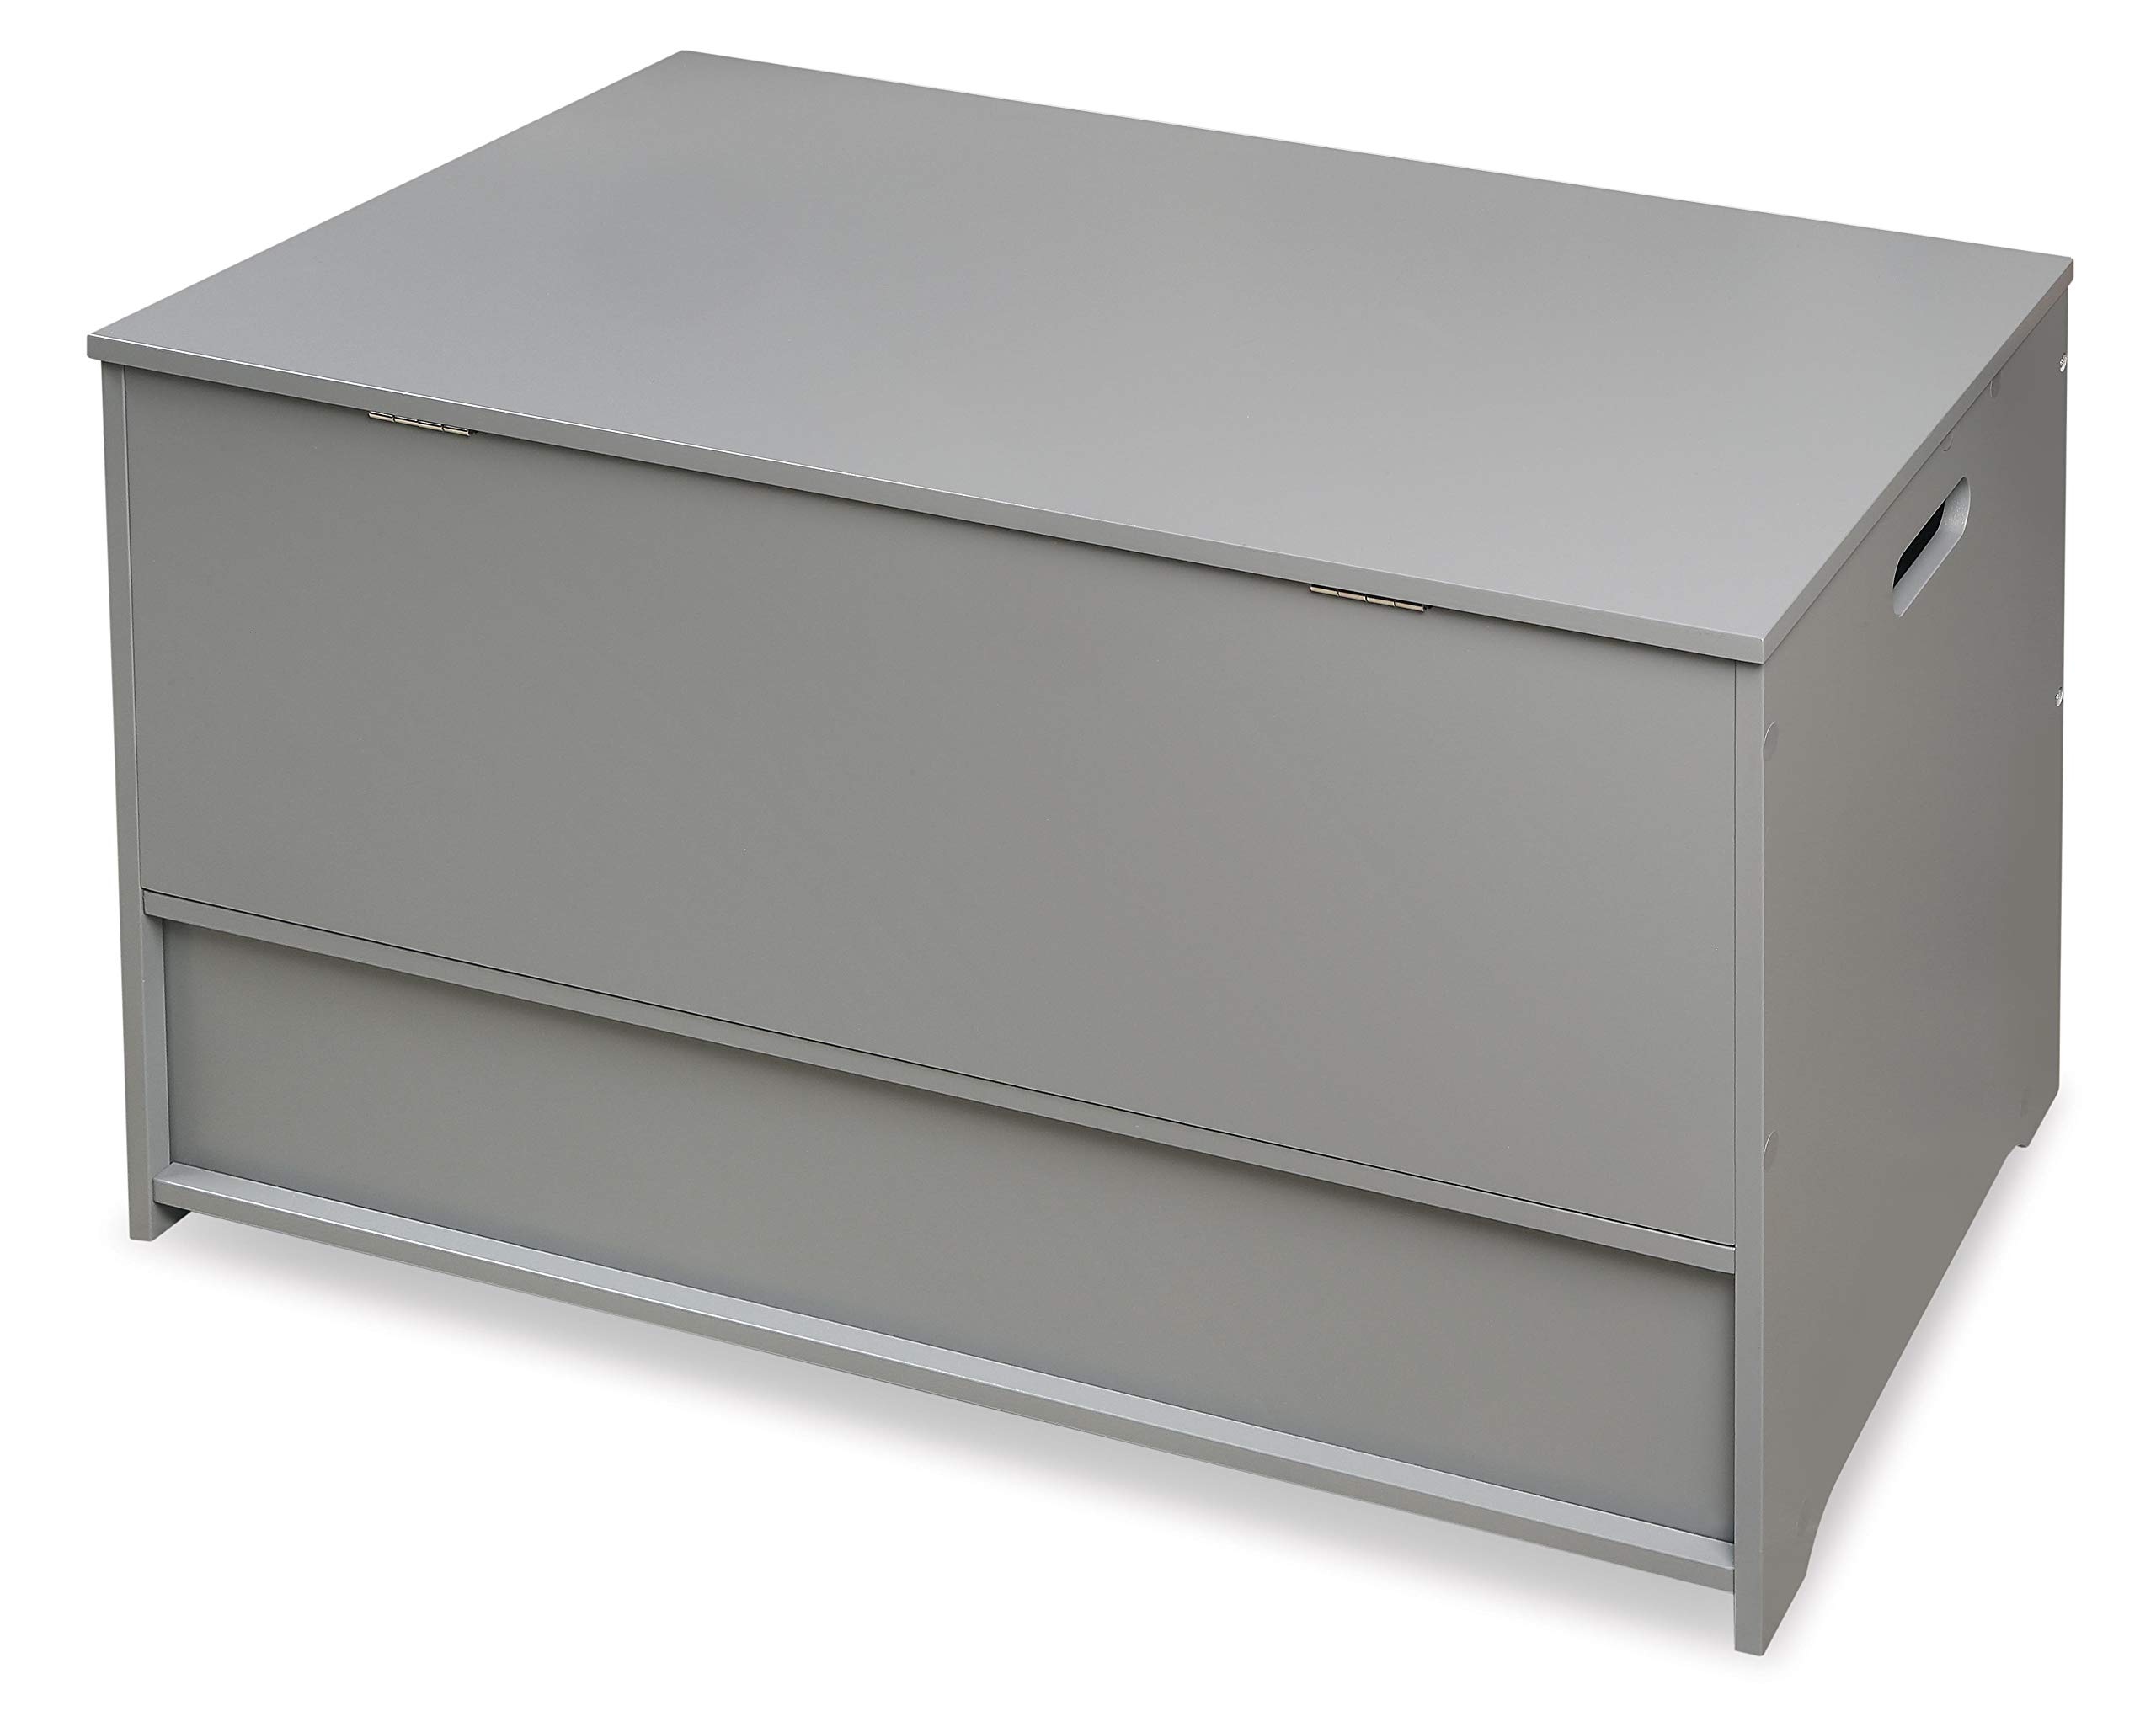 Badger Basket Up and Down Toy and Storage Box with 2 Basket Drawers, Gray/White by Badger Basket (Image #6)